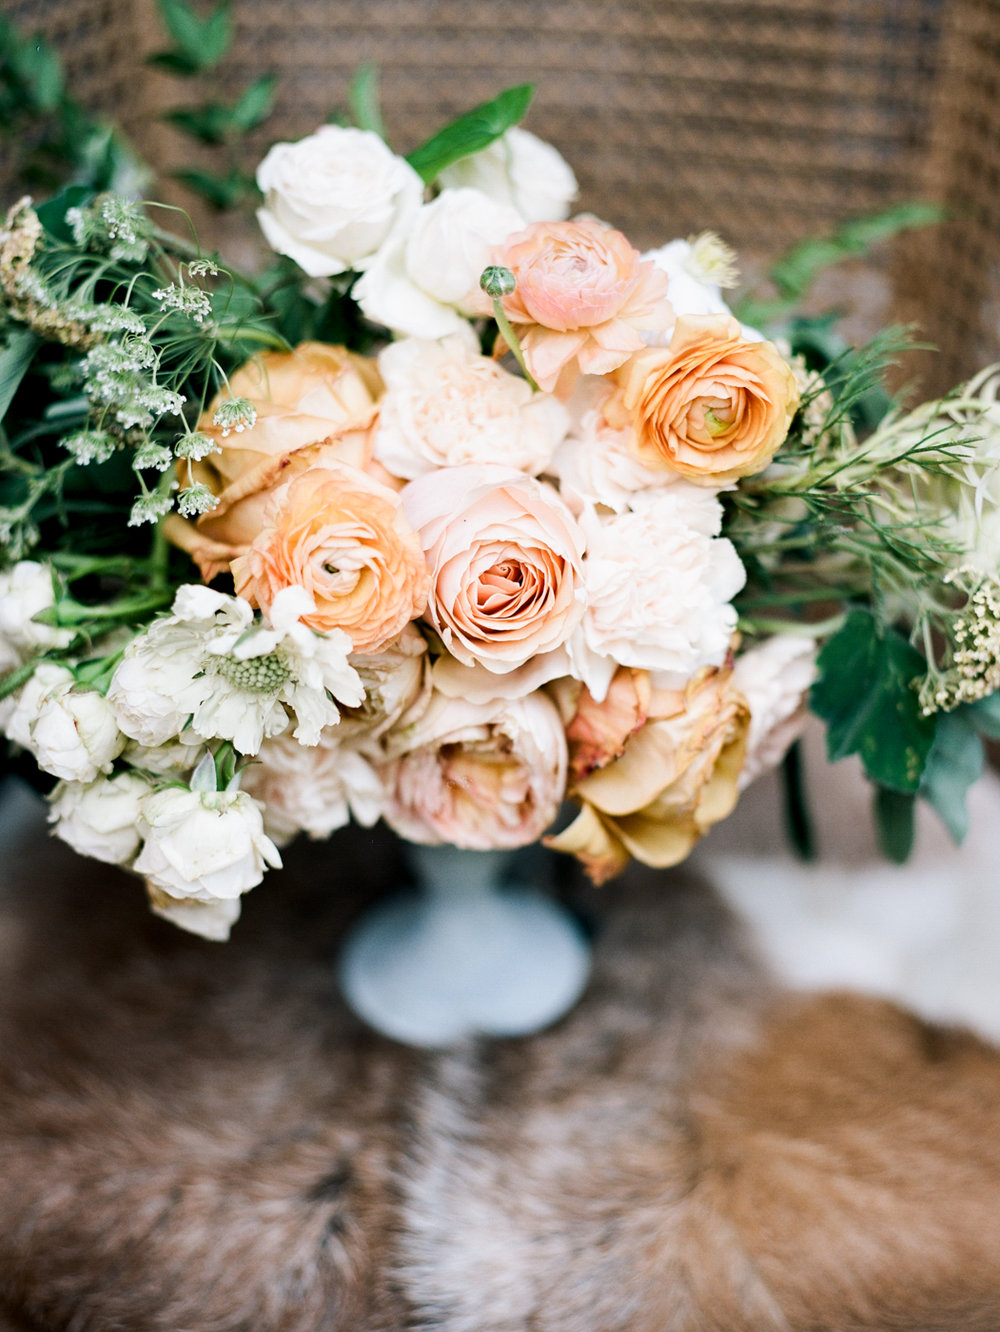 Savannah wedding flowers florist ranunculus roses